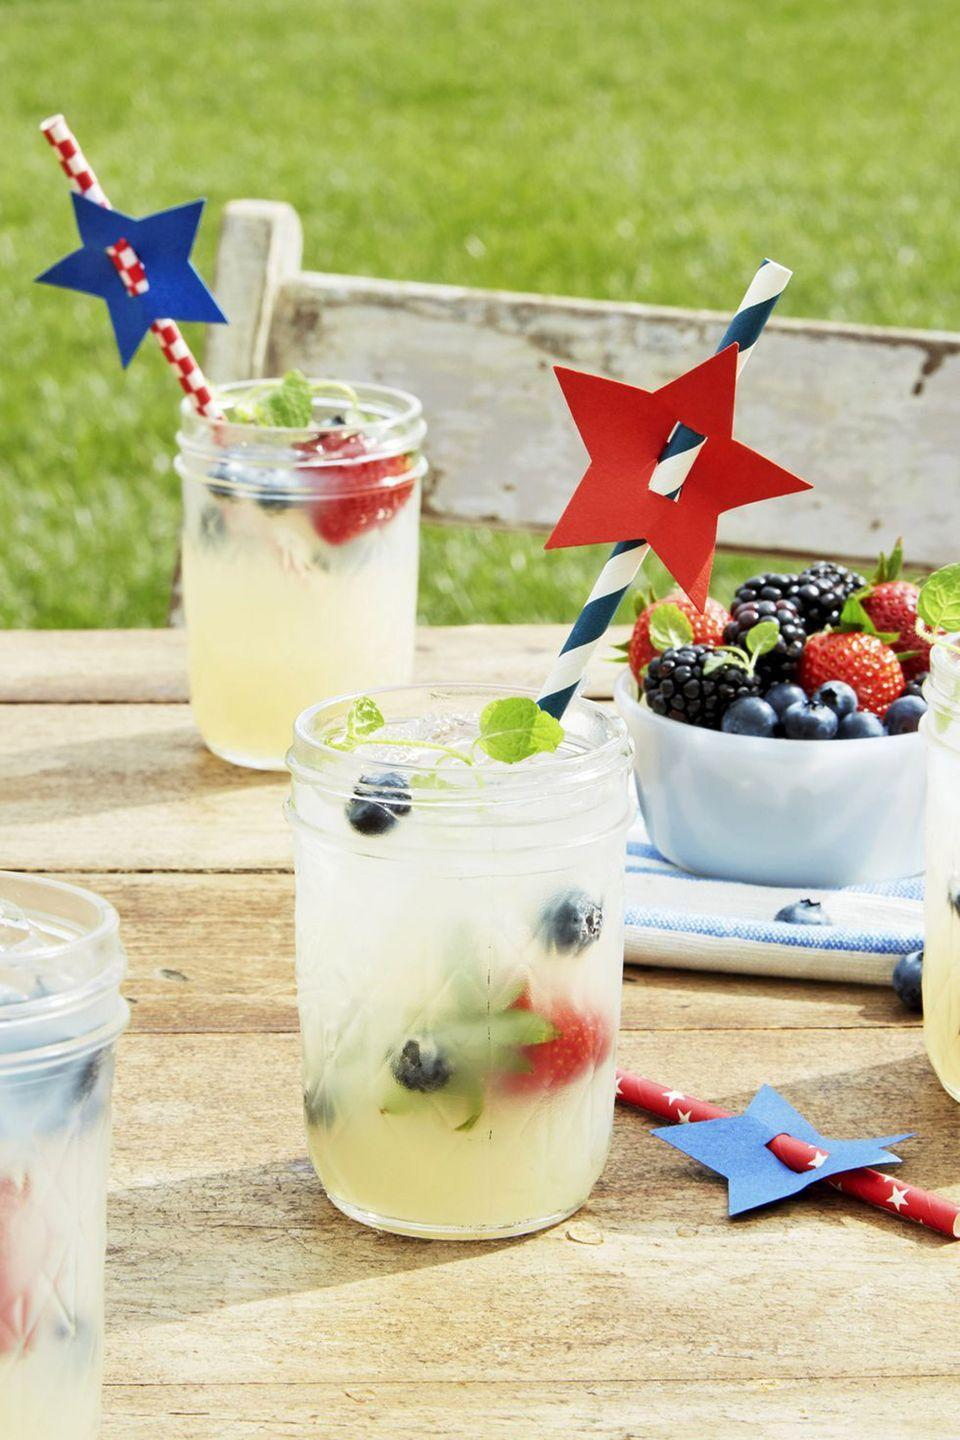 """<p>Take a break from the July heat with a tall glass of fruit-filled lemonade. <br></p><p><strong><a href=""""https://www.countryliving.com/food-drinks/a21348860/old-fashioned-lemonade-recipe/"""" rel=""""nofollow noopener"""" target=""""_blank"""" data-ylk=""""slk:Get the recipe"""" class=""""link rapid-noclick-resp"""">Get the recipe</a></strong><strong>.</strong></p>"""